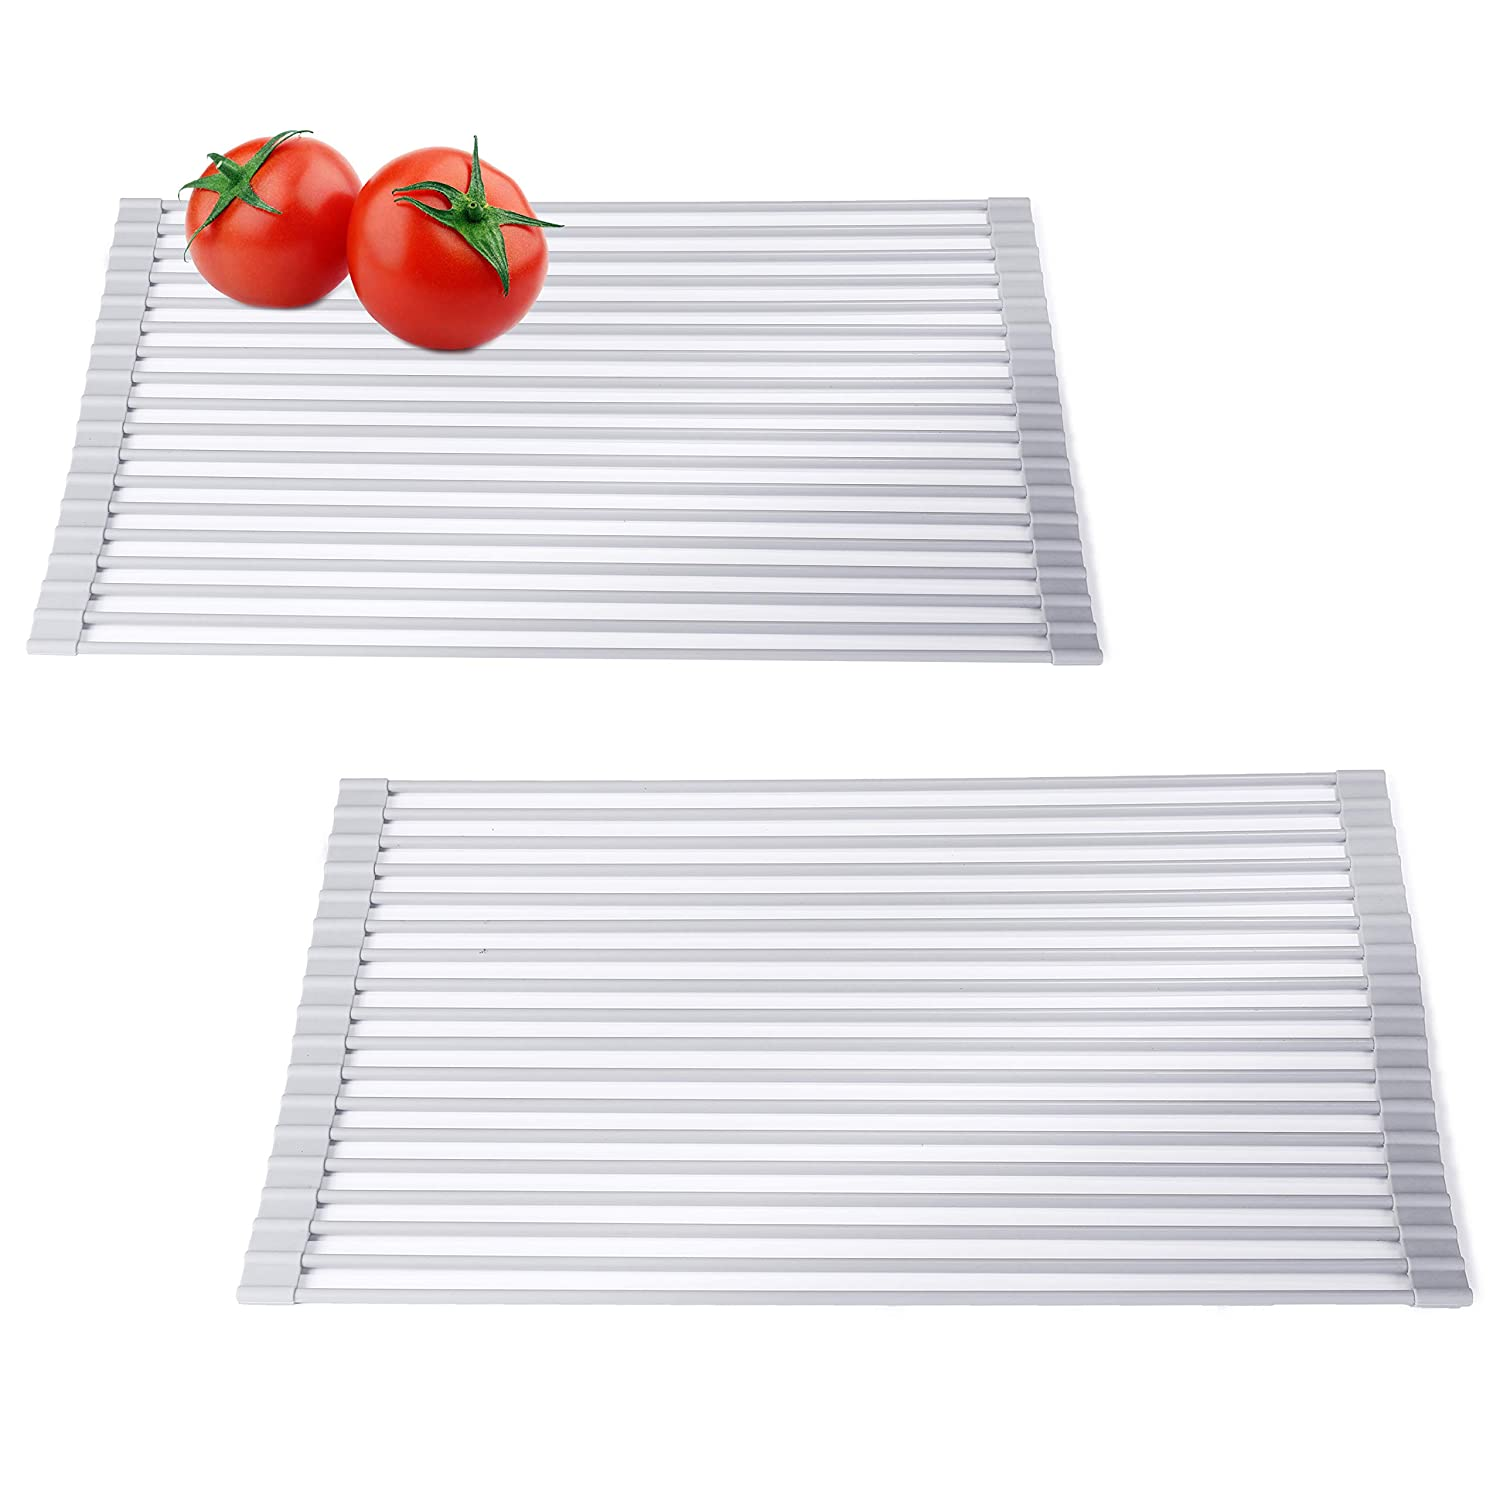 MyGift Silicon-Coated Over-the-Sink Roll-Up Dish Drying /& Vegetable Washing Racks Set of 2